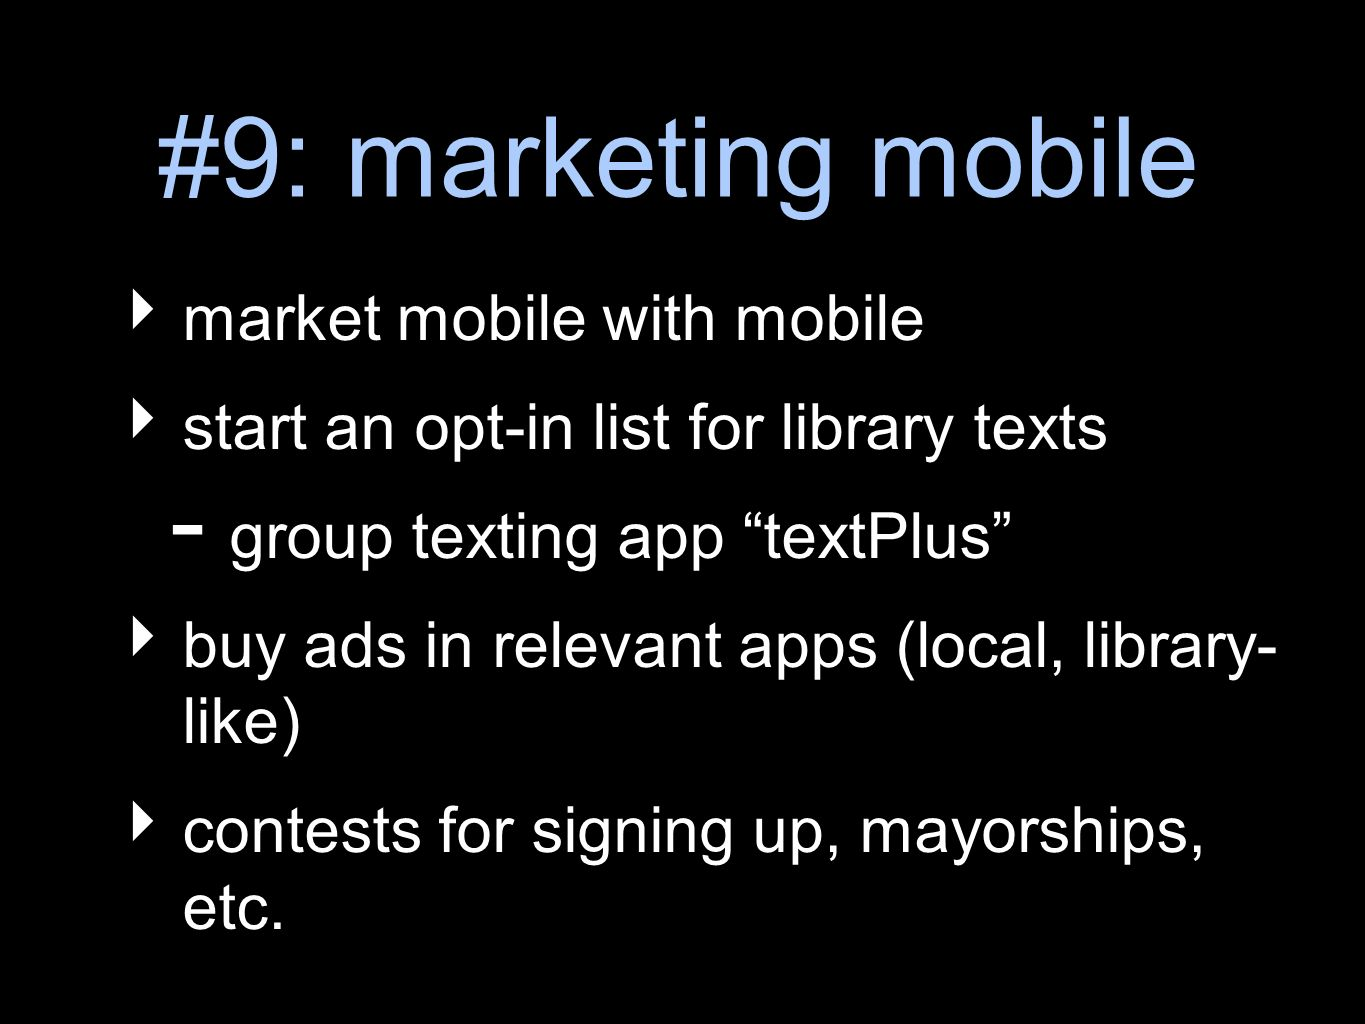 #9: marketing mobile market mobile with mobile start an opt-in list for library texts - group texting app textPlus buy ads in relevant apps (local, library- like) contests for signing up, mayorships, etc.